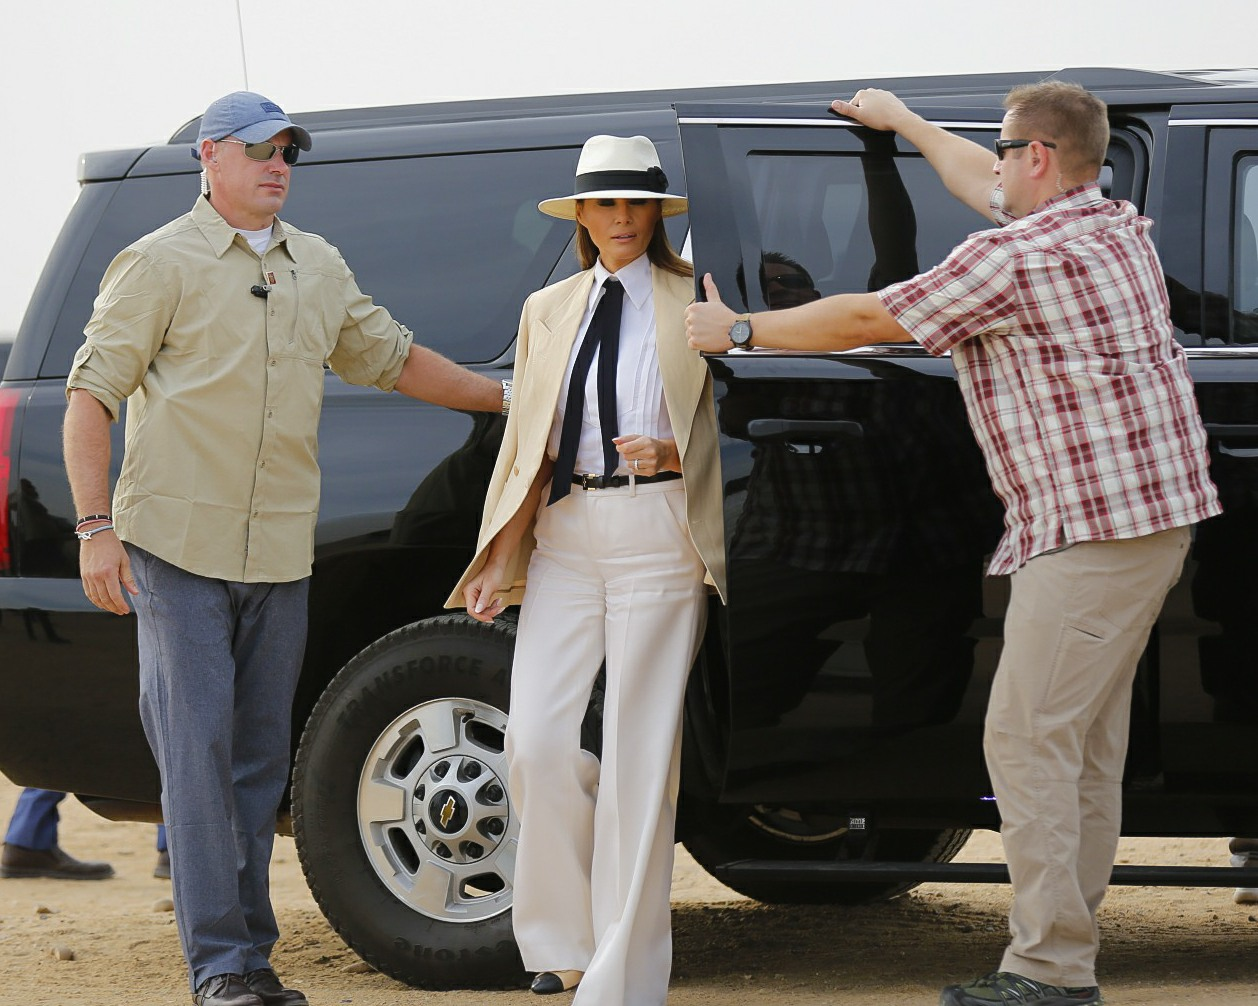 First Lady Trump visits Egypt